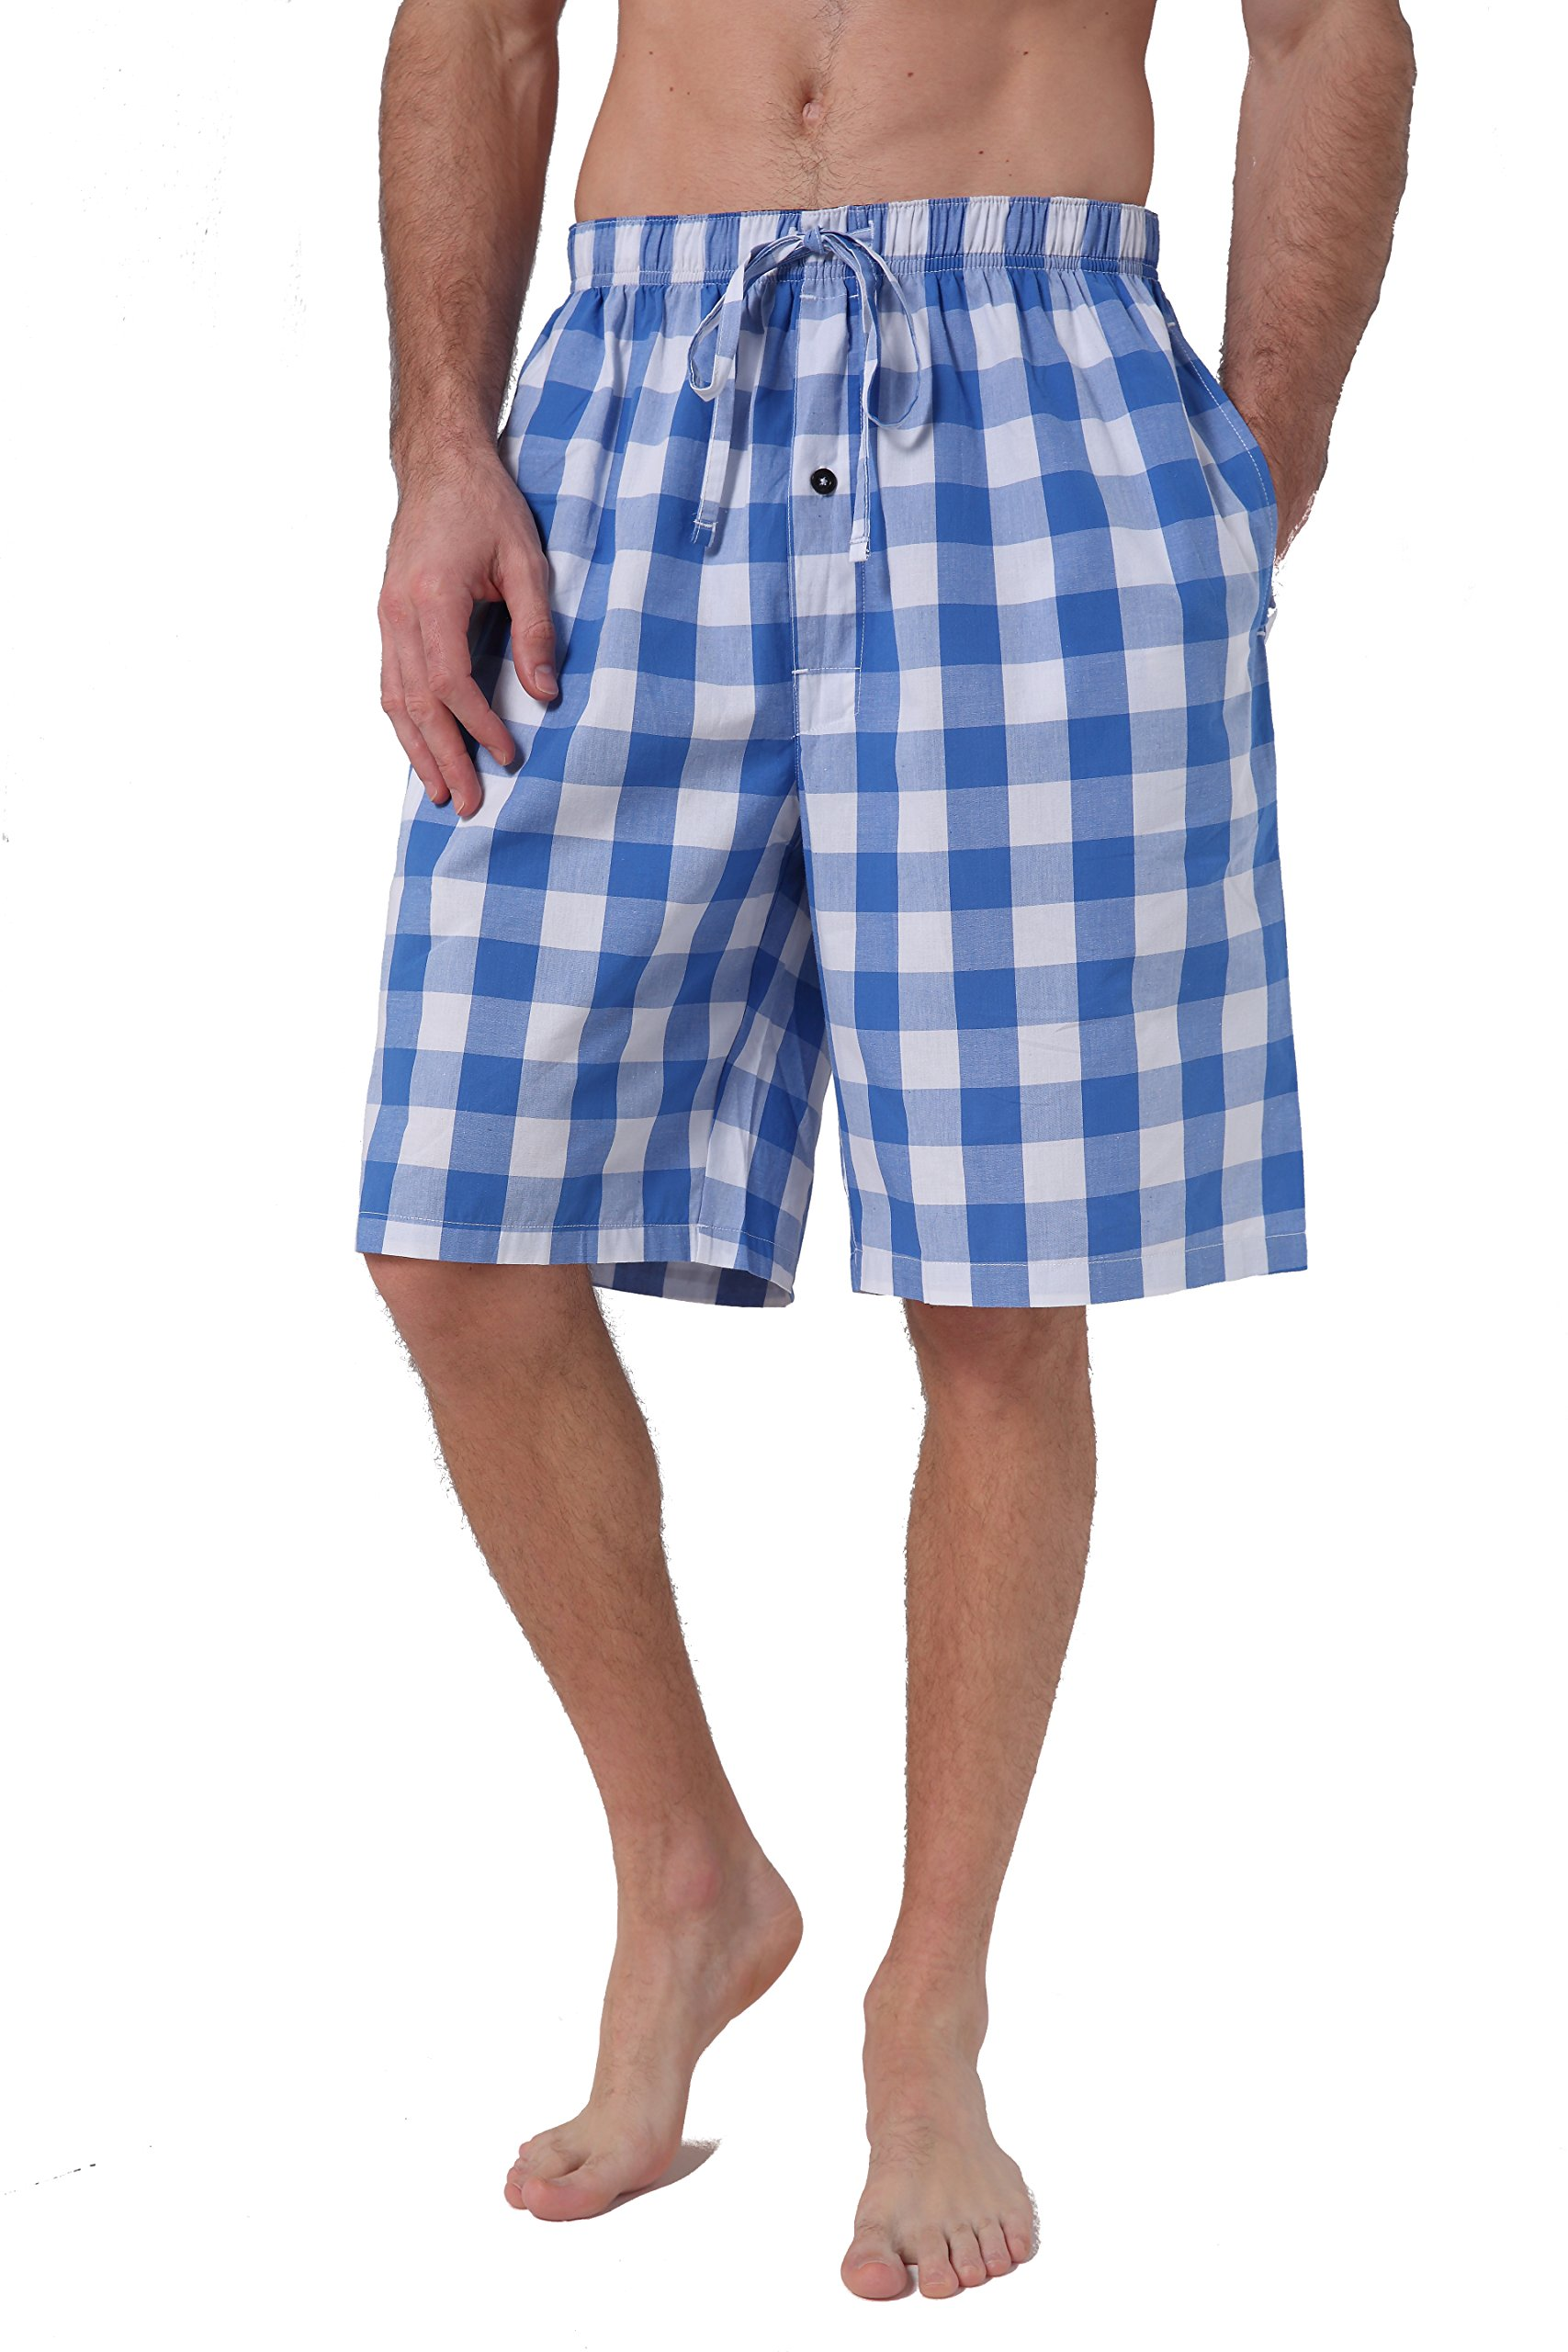 CYZ Men's 100% Cotton Plaid Poplin Woven Lounge/Sleep Shorts-F1708-L